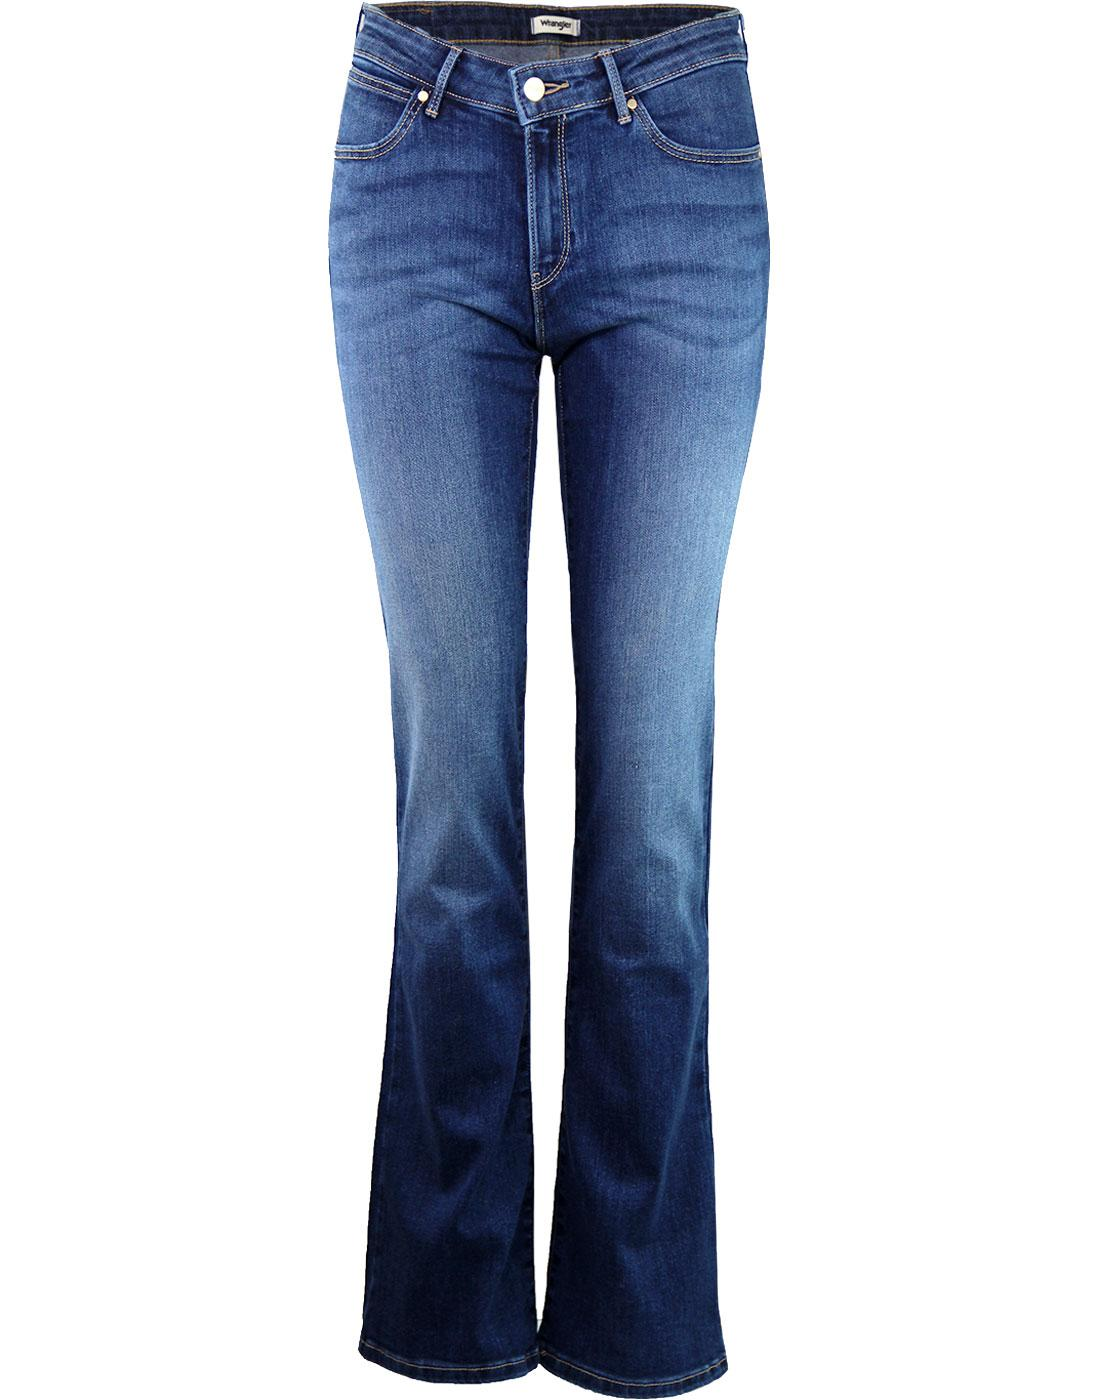 WRANGLER Women's Authentic Blue 70s Bootcut Jeans